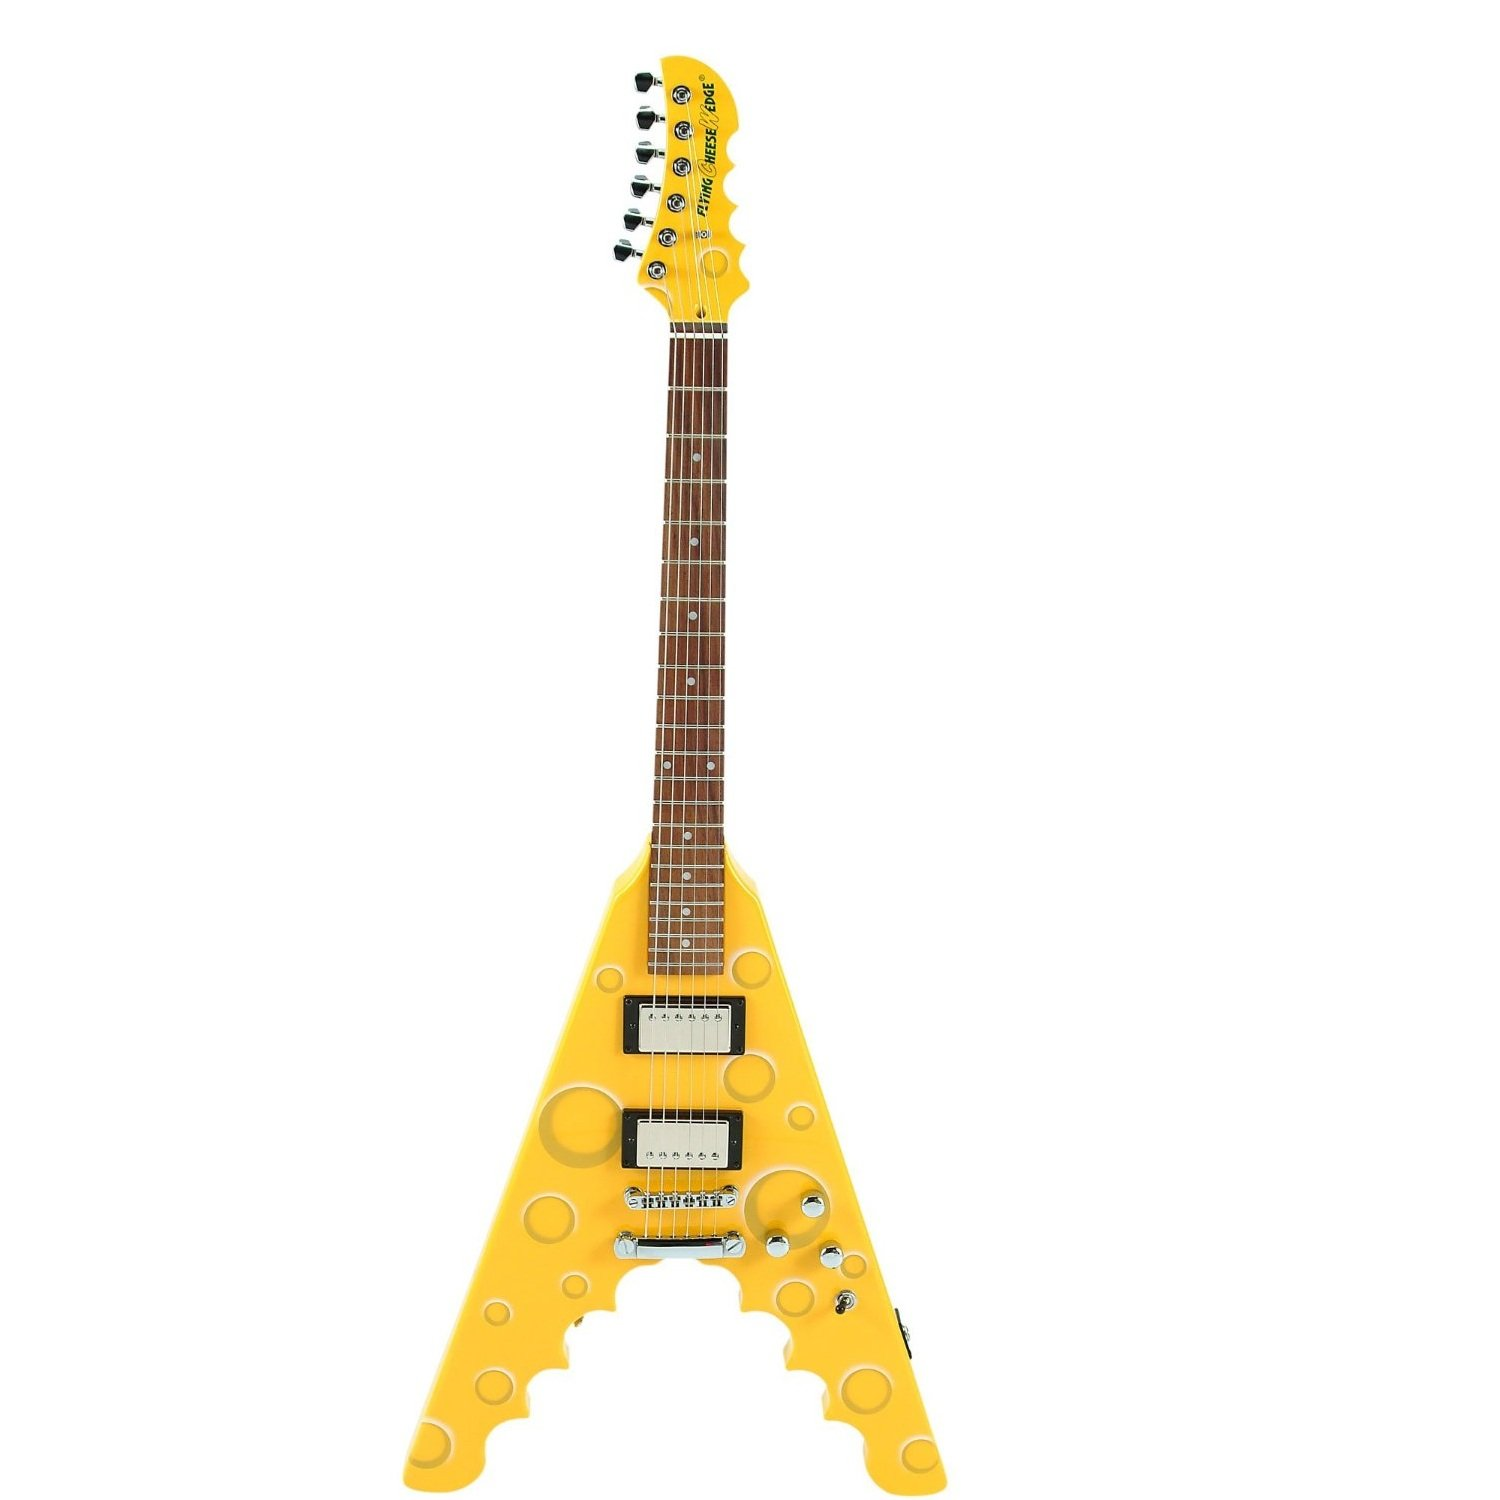 archer cheesewedge flying cheese wedge electric guitar